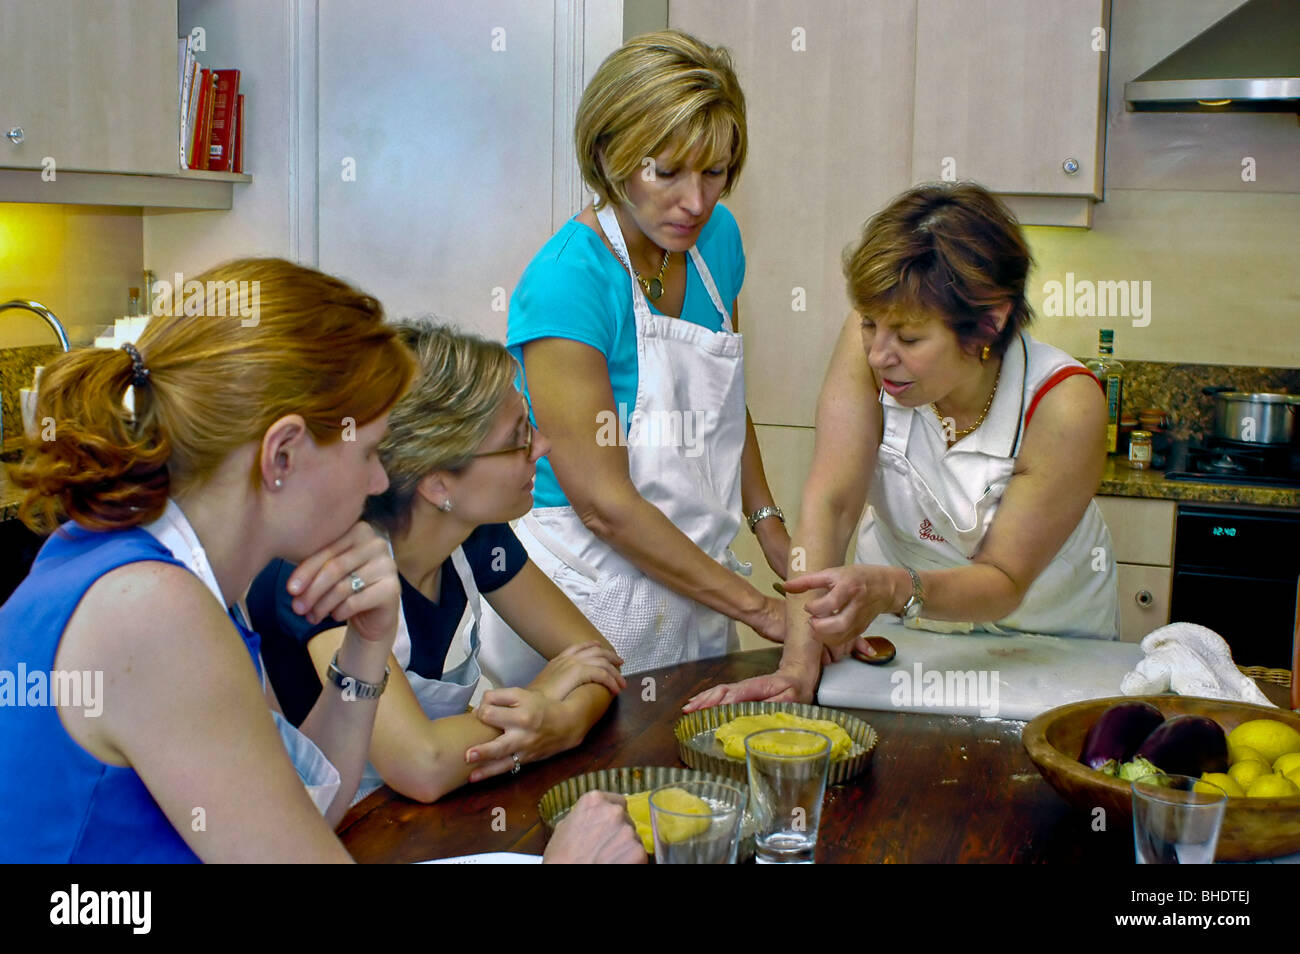 PARIS , France - Mixed Group of American University Students Preparing Meals in Cooking class, 'Promenades Gourmandes', - Stock Image